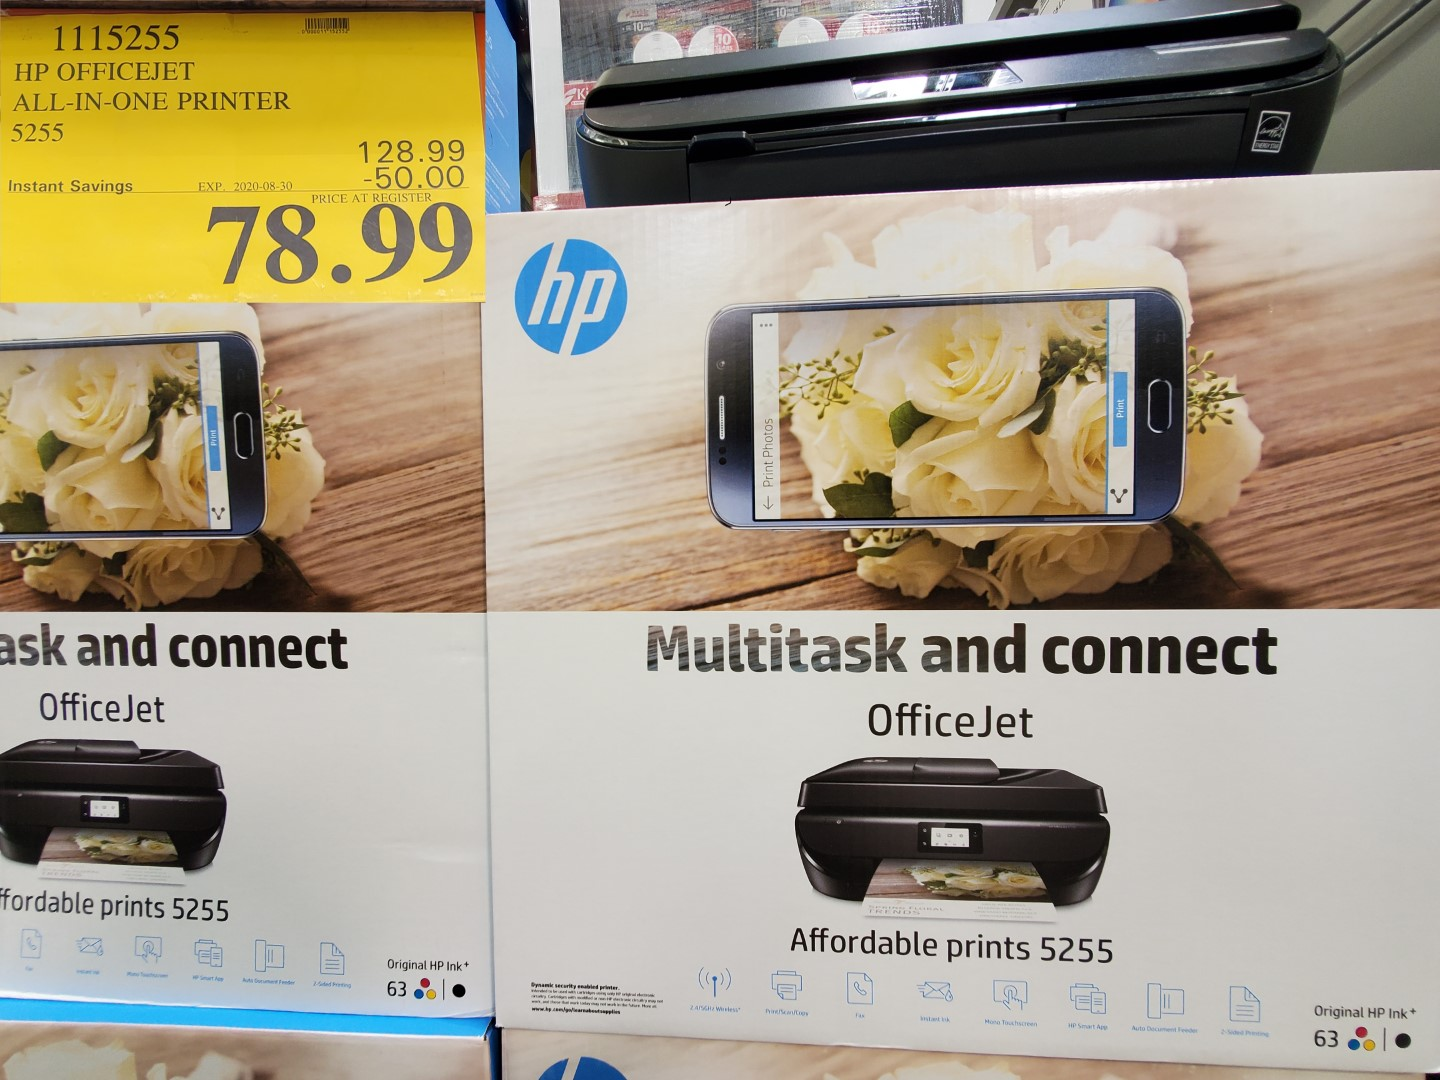 HP officejet all-in-one printer